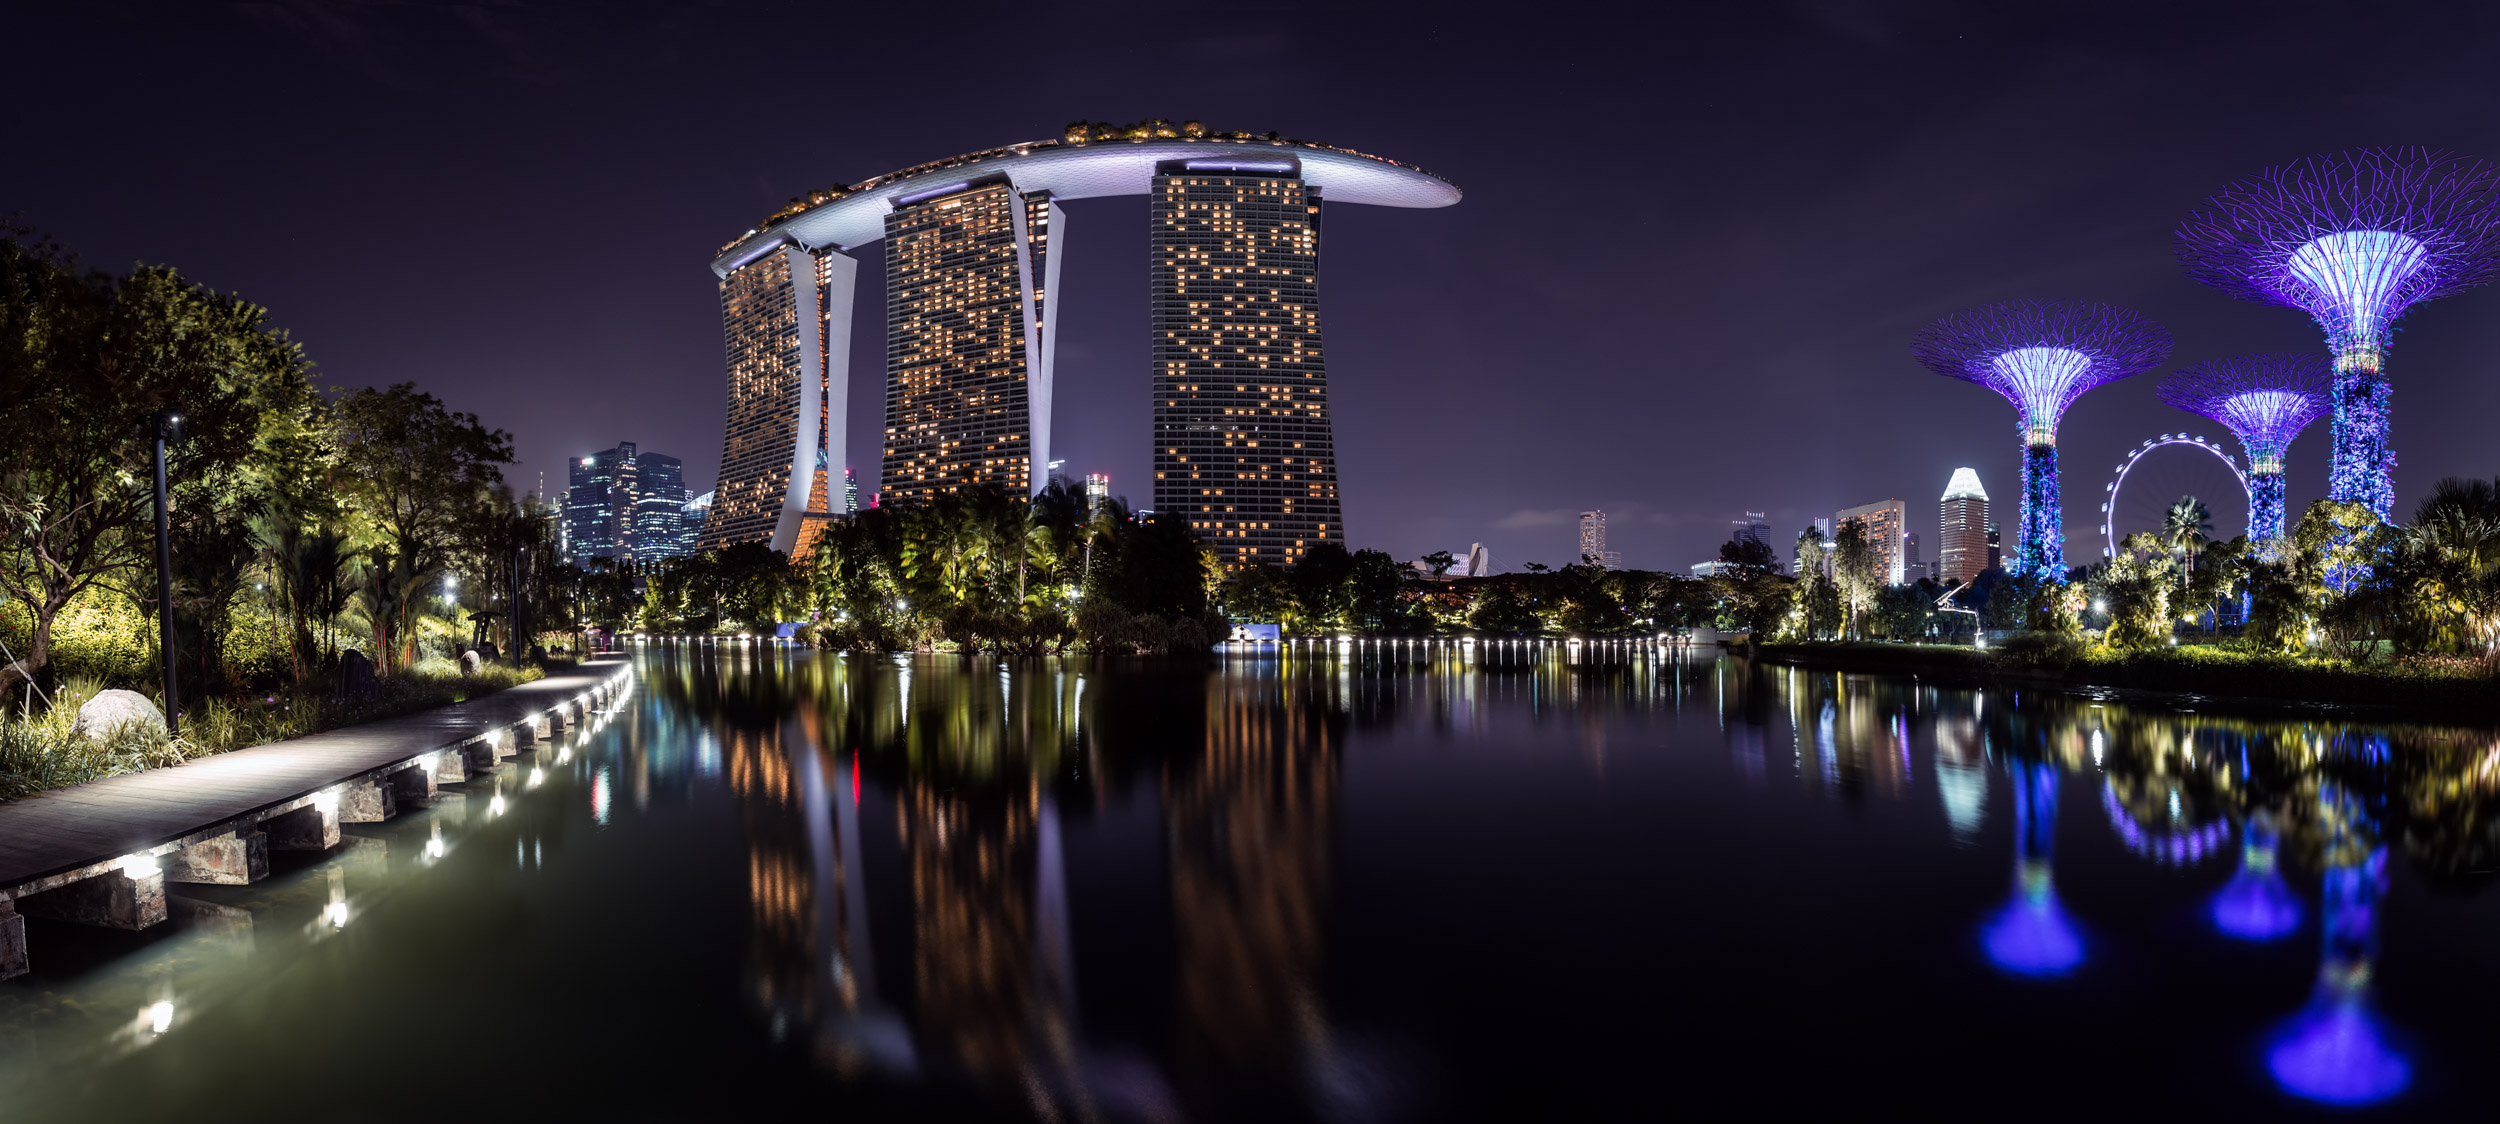 Marina Bay Sands - Singapur - City Photography by Lukas Petereit